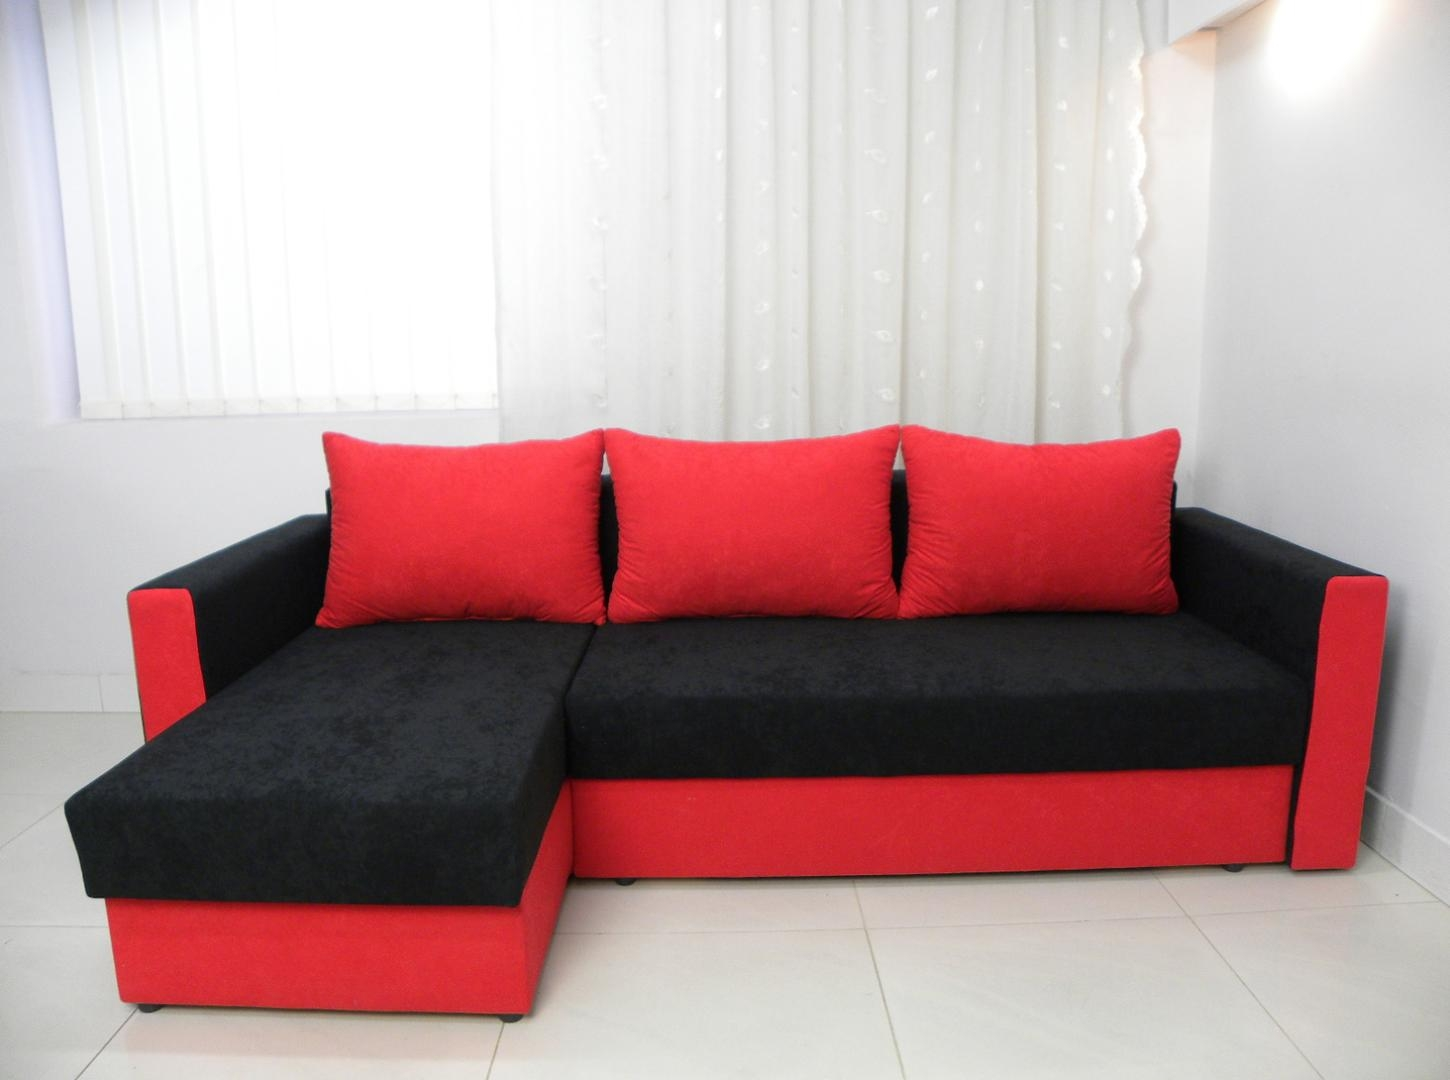 Sofa Corner Bed Red Redditch South Wales Leather Cover Birmingham For Sofa Red And Black (View 7 of 20)